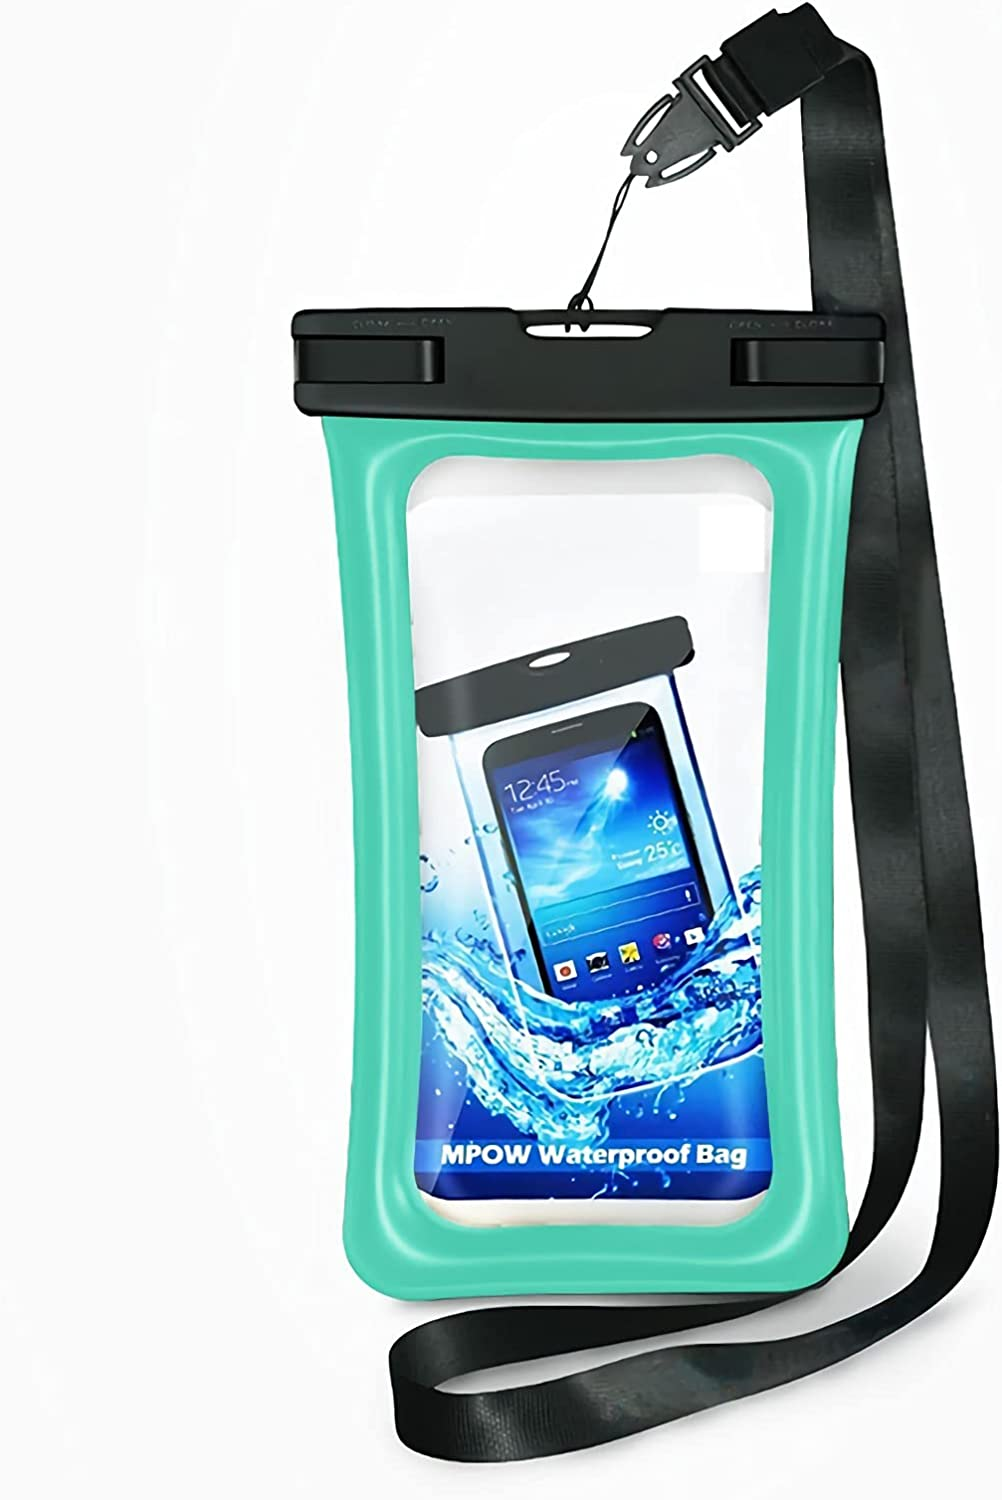 """Water Proof Bag Packs Neck Pouch Cell Phone Bag Waterproof for Phone Pouch Floating Universal Waterproof Pouch Cellphone Dry Bag Case All Phones Up to 6.5"""" (Light Blue, L)"""